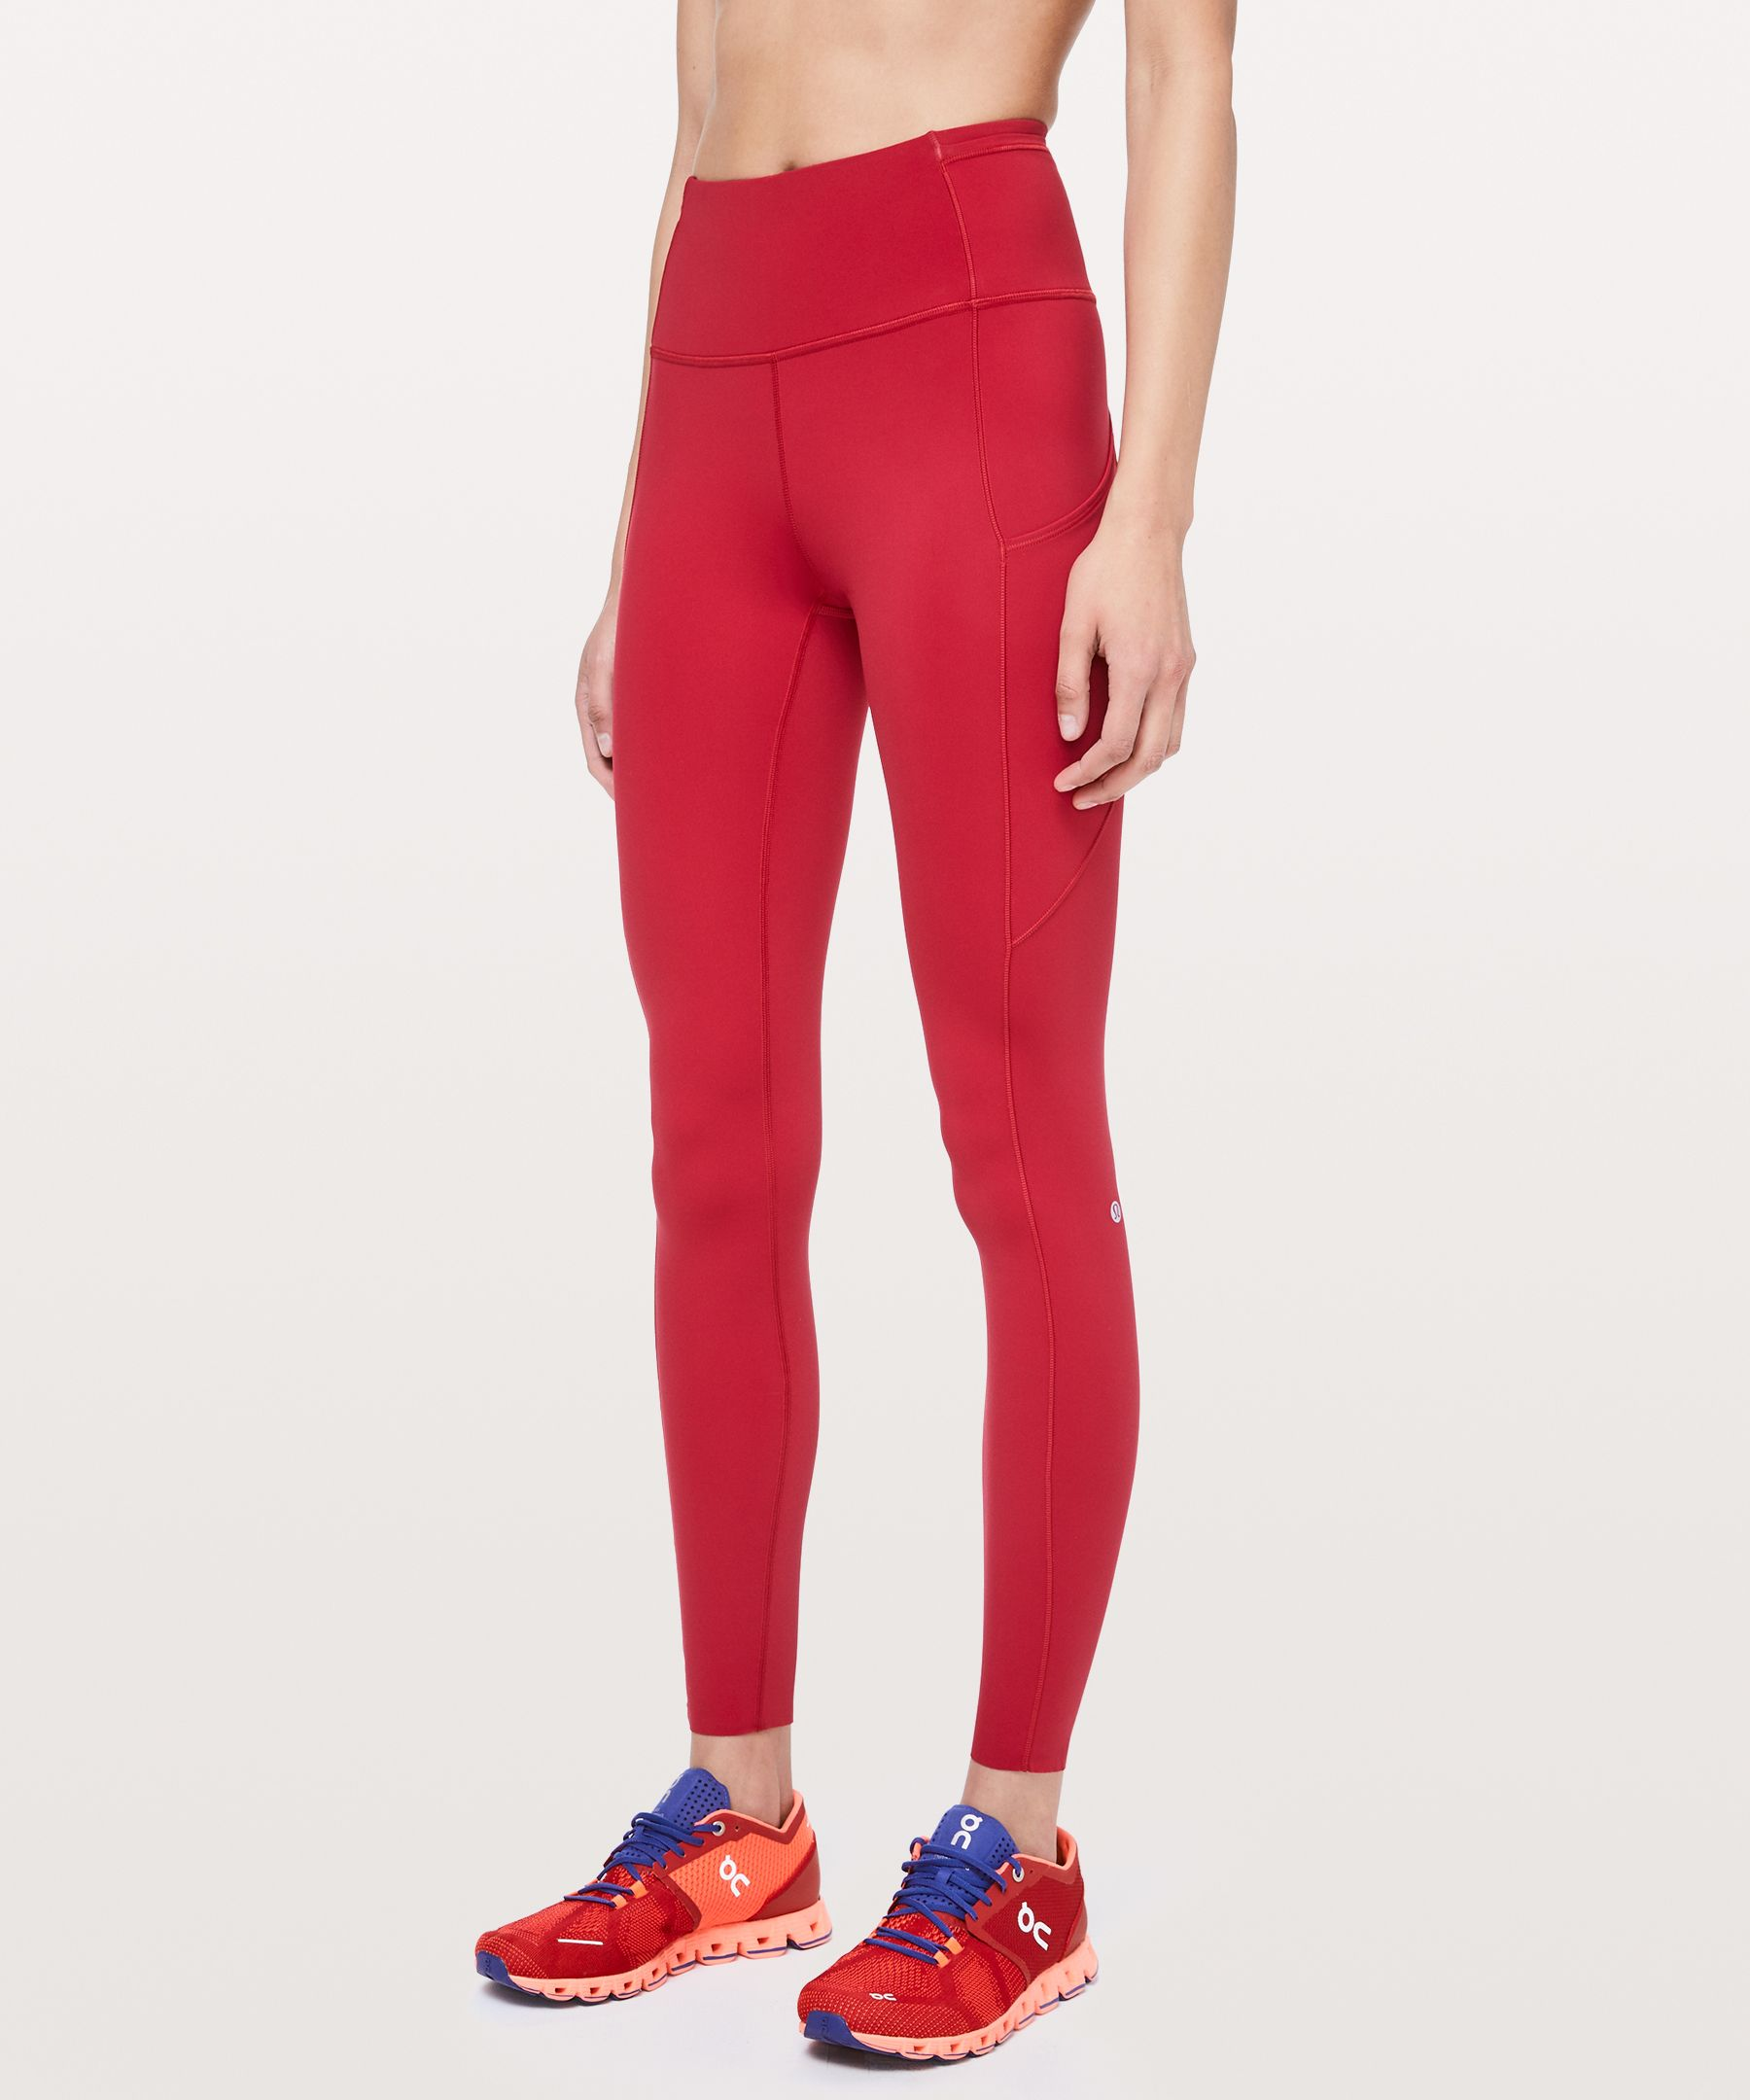 Feel as fast as you do free in  these barely-there feeling  tights that won\\\'t distract you  from picking up the pace.  Nulux™ fabric offers near  weightless coverage for a  seriously smooth stride.